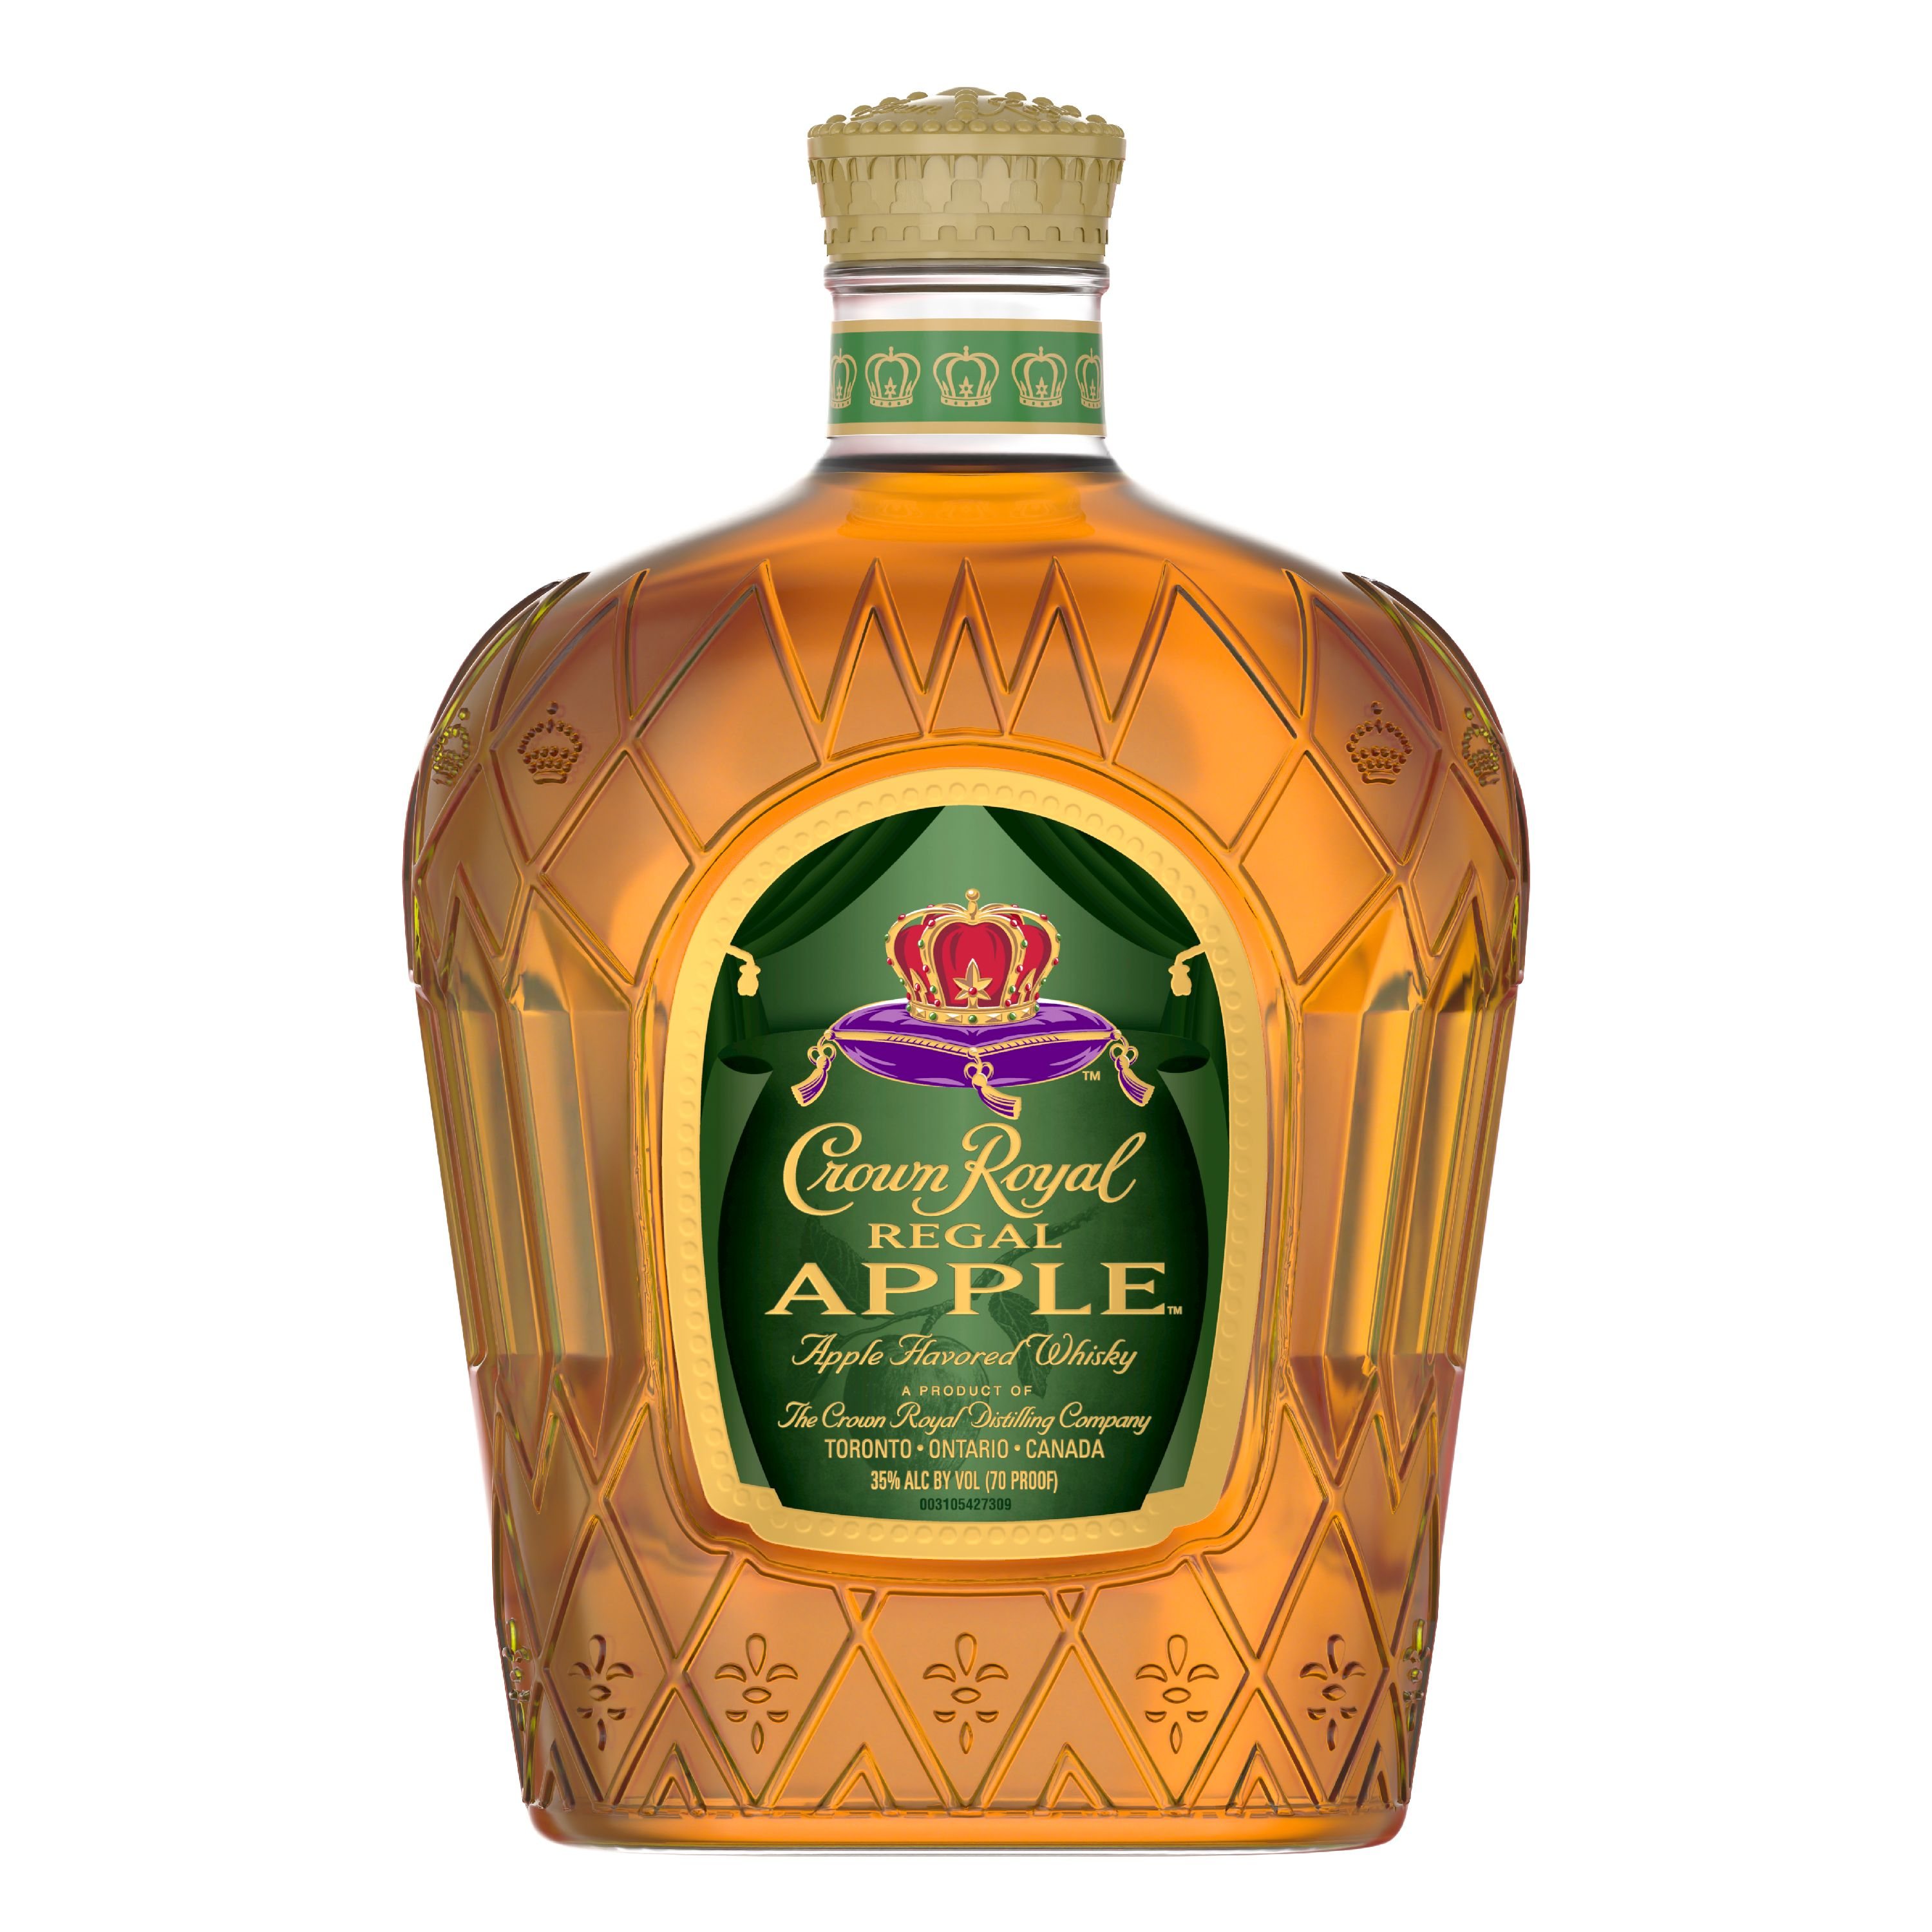 Crown Royal Regal Apple Flavored Whisky 1 L (70 Proof ...